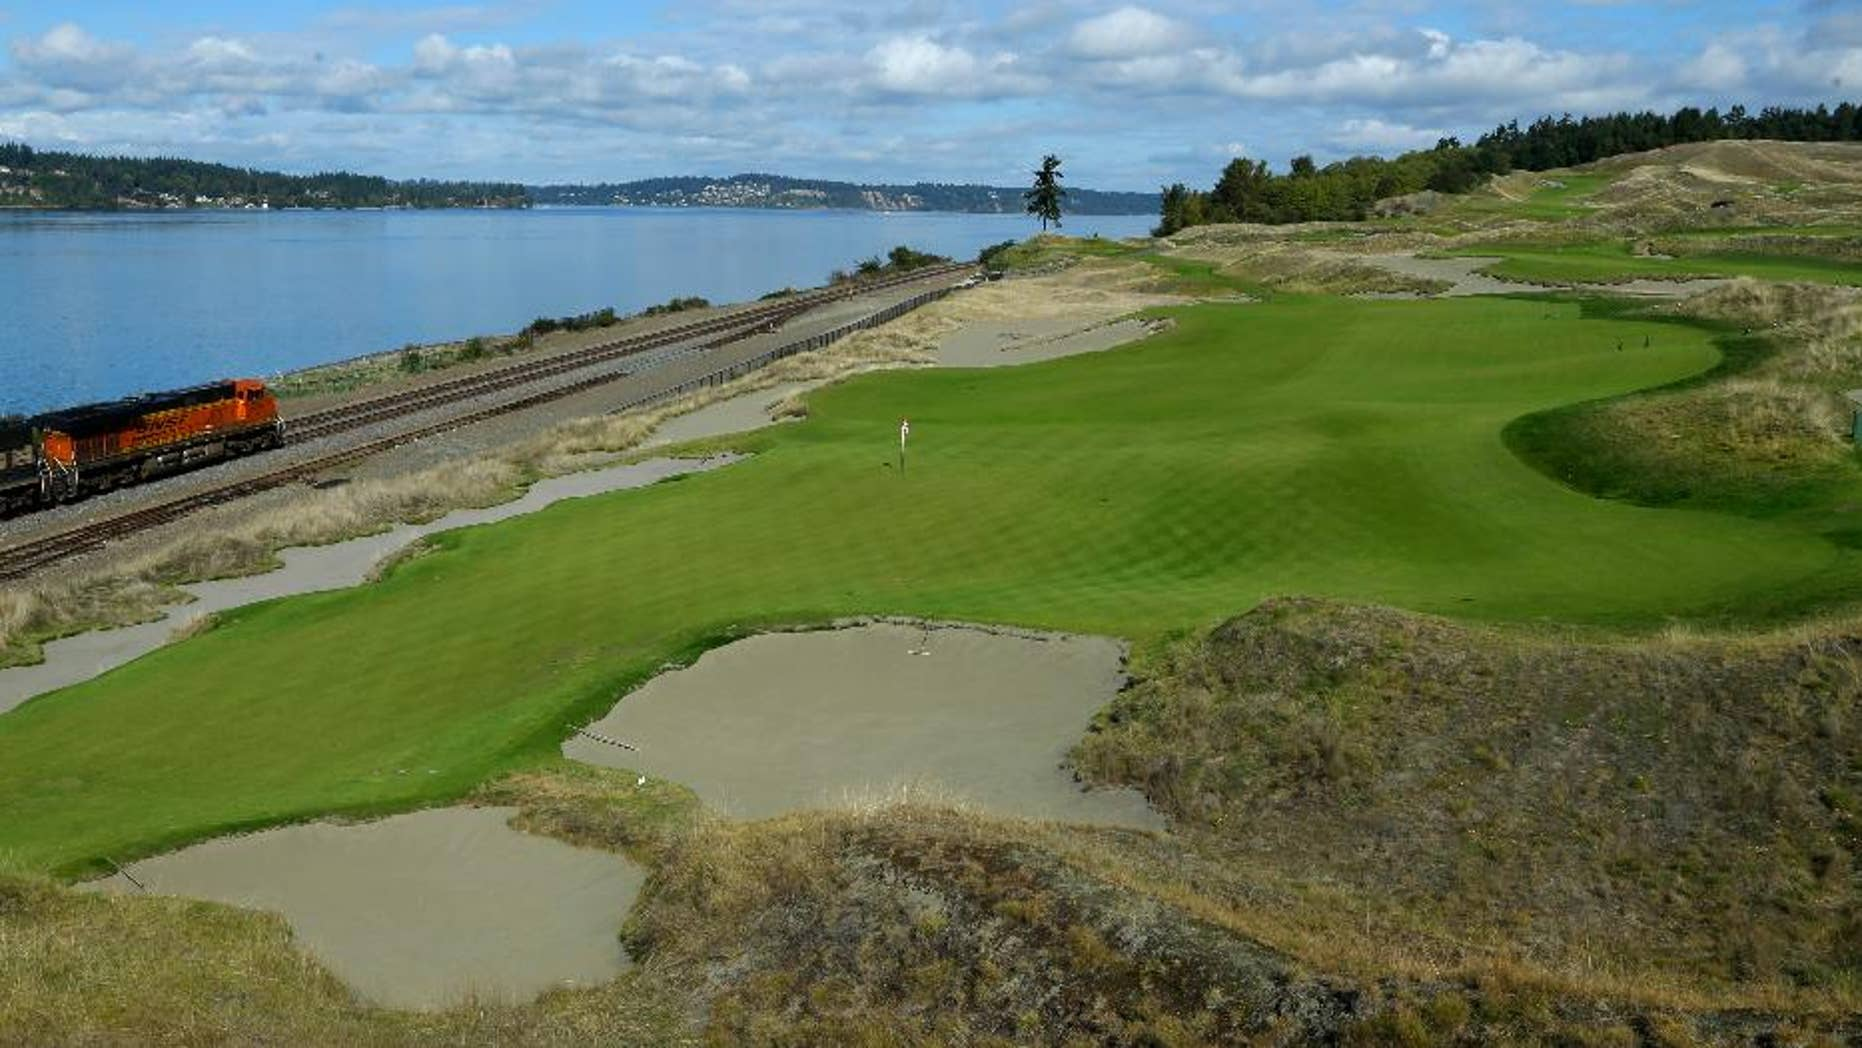 In this Sept. 30, 2014, file photo, the 16th hole of the Chambers Bay golf course is shown as a freight train passes at left in University Place, Wash. Next week the course, which opened in 2007, will become the youngest golf course to host the U.S. Open since Hazeltine in 1970. (AP Photo/Ted S. Warren, file)